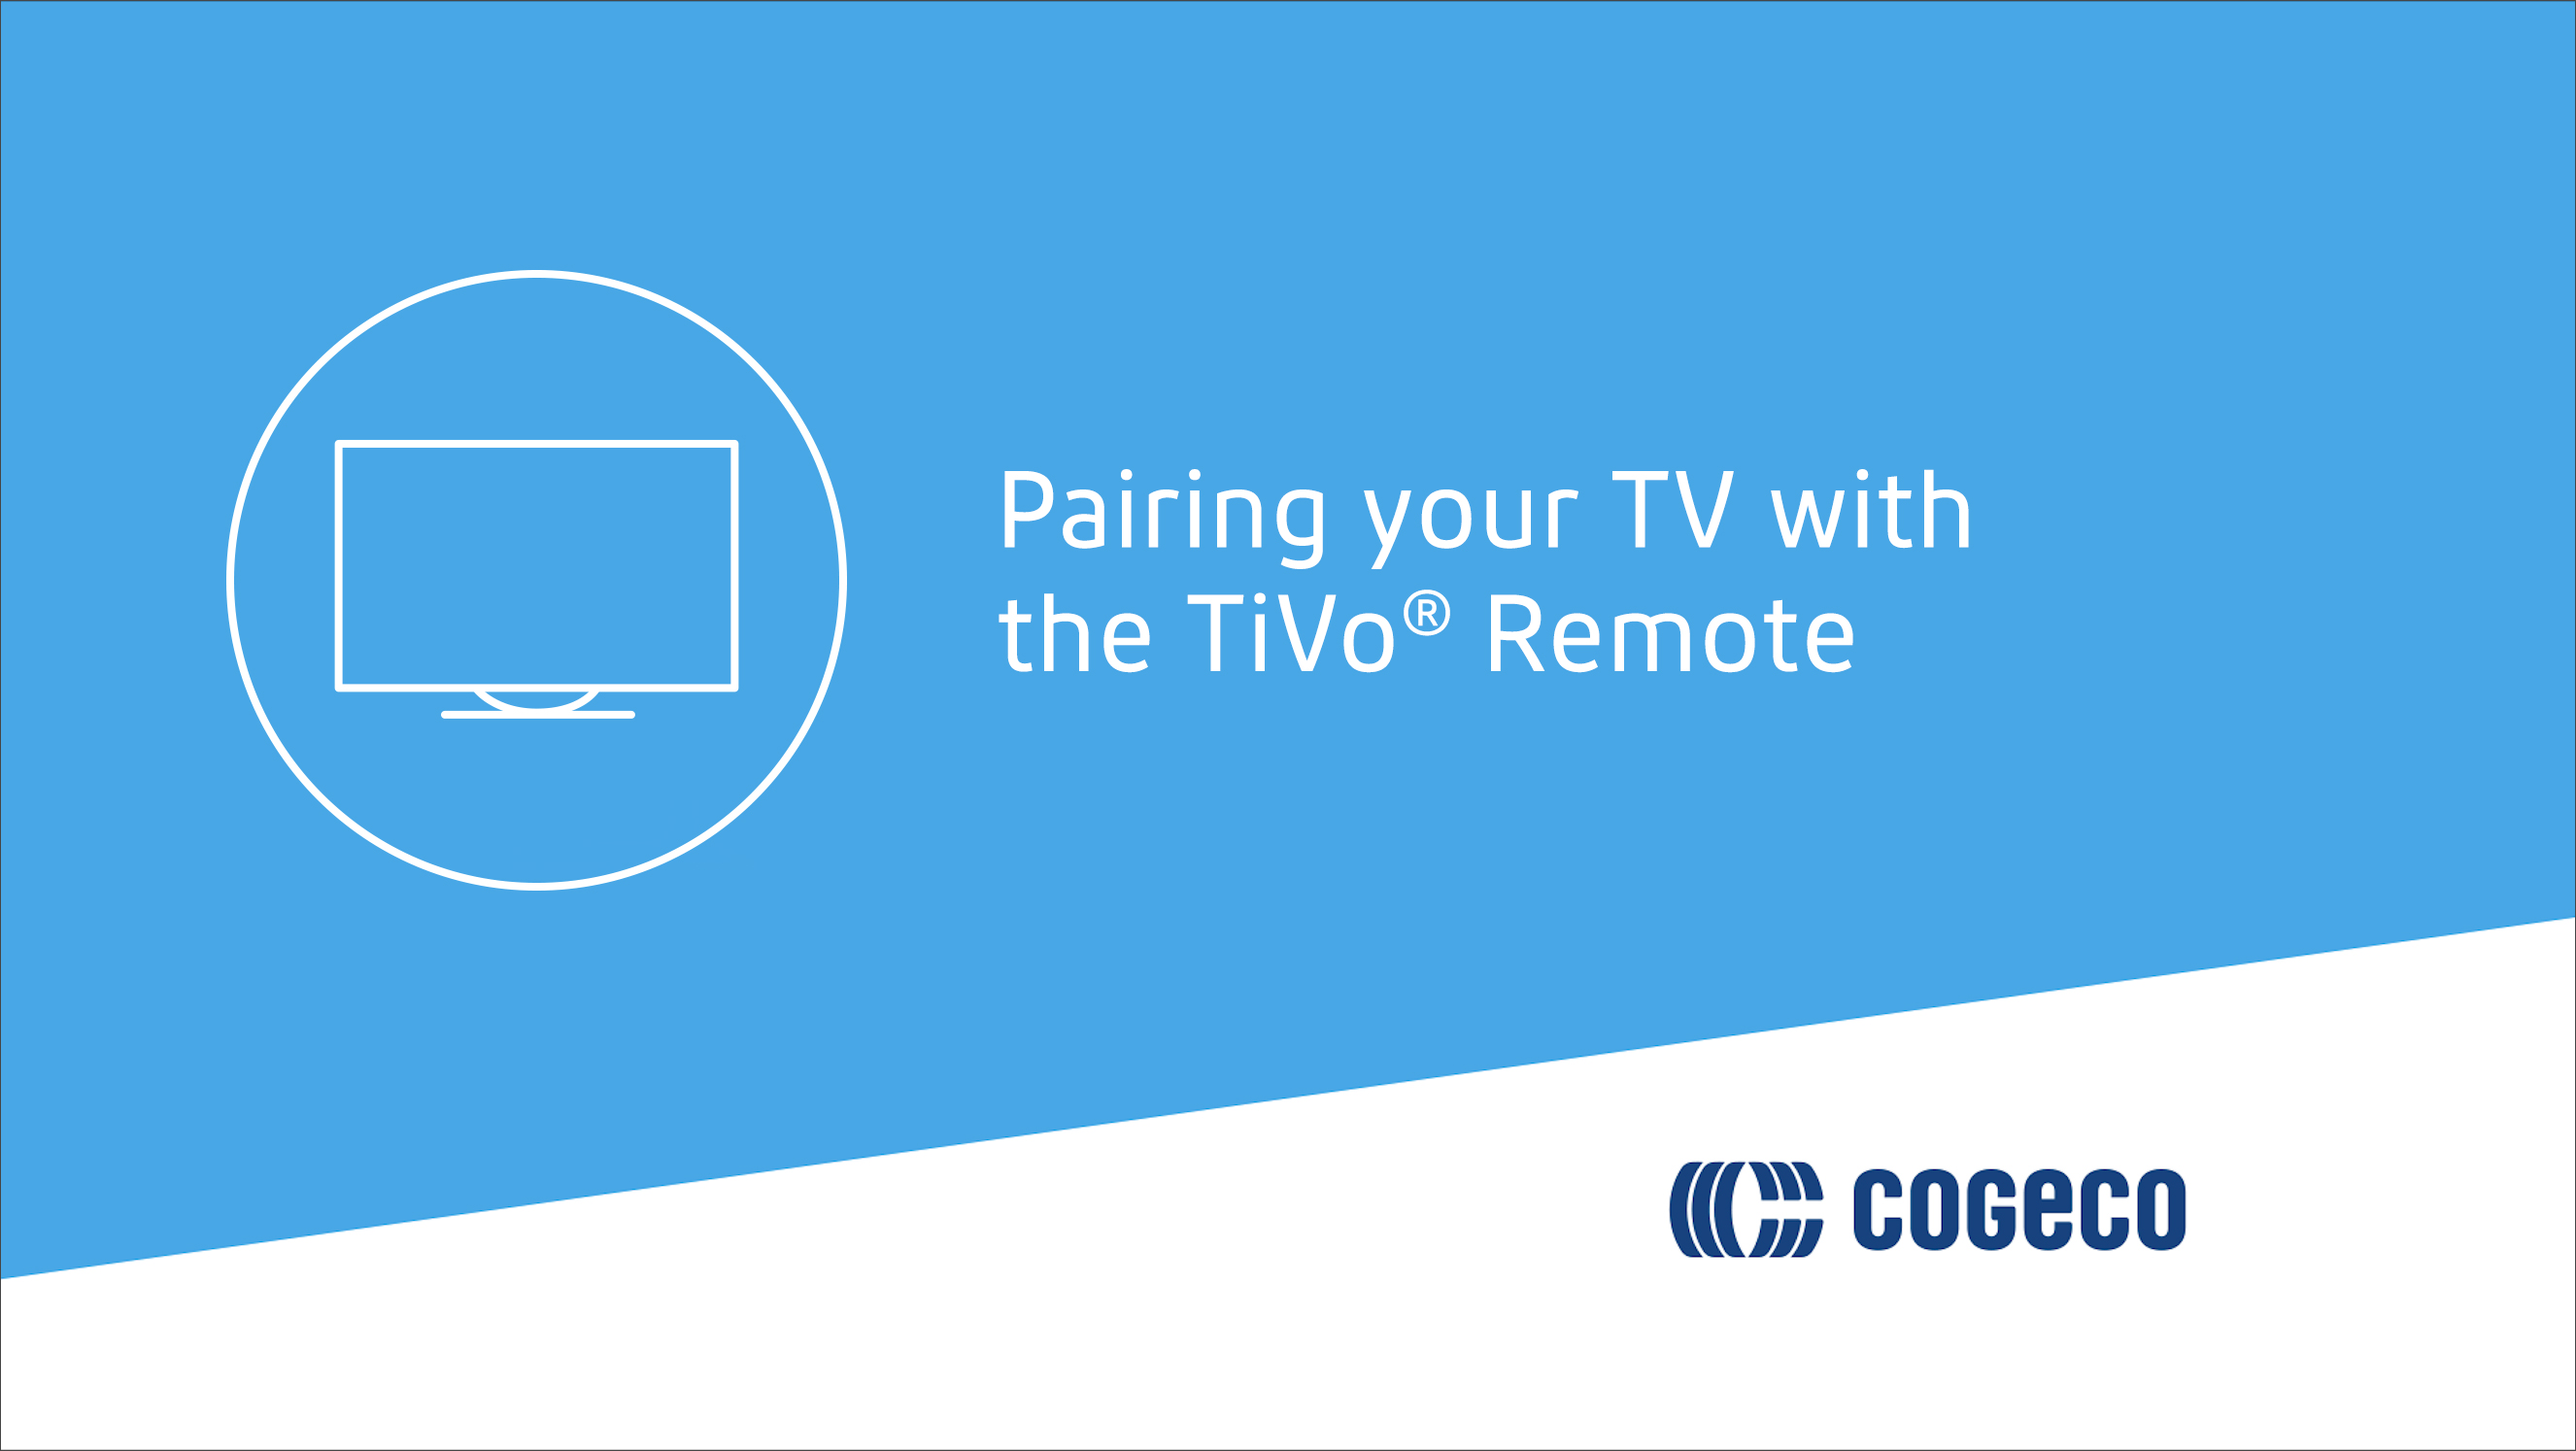 Pairing your TV with the TiVo remote